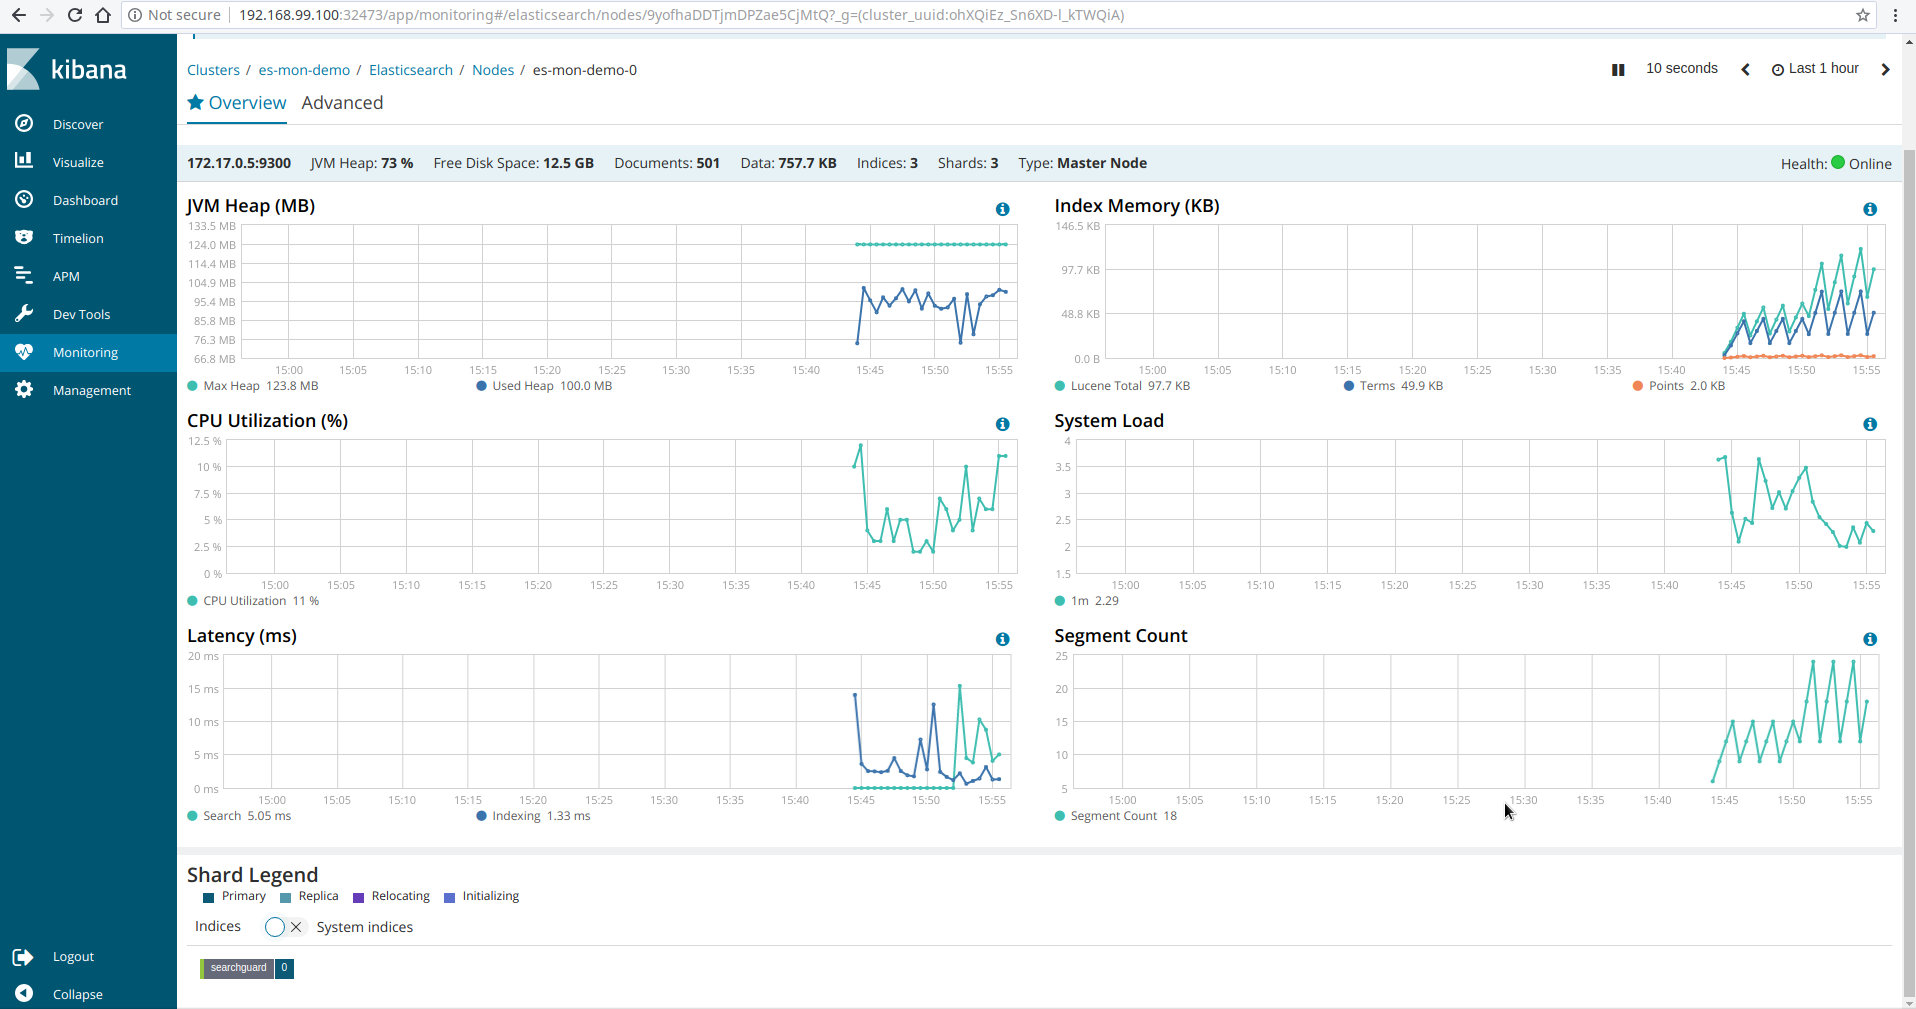 Kibana Monitoring Overview